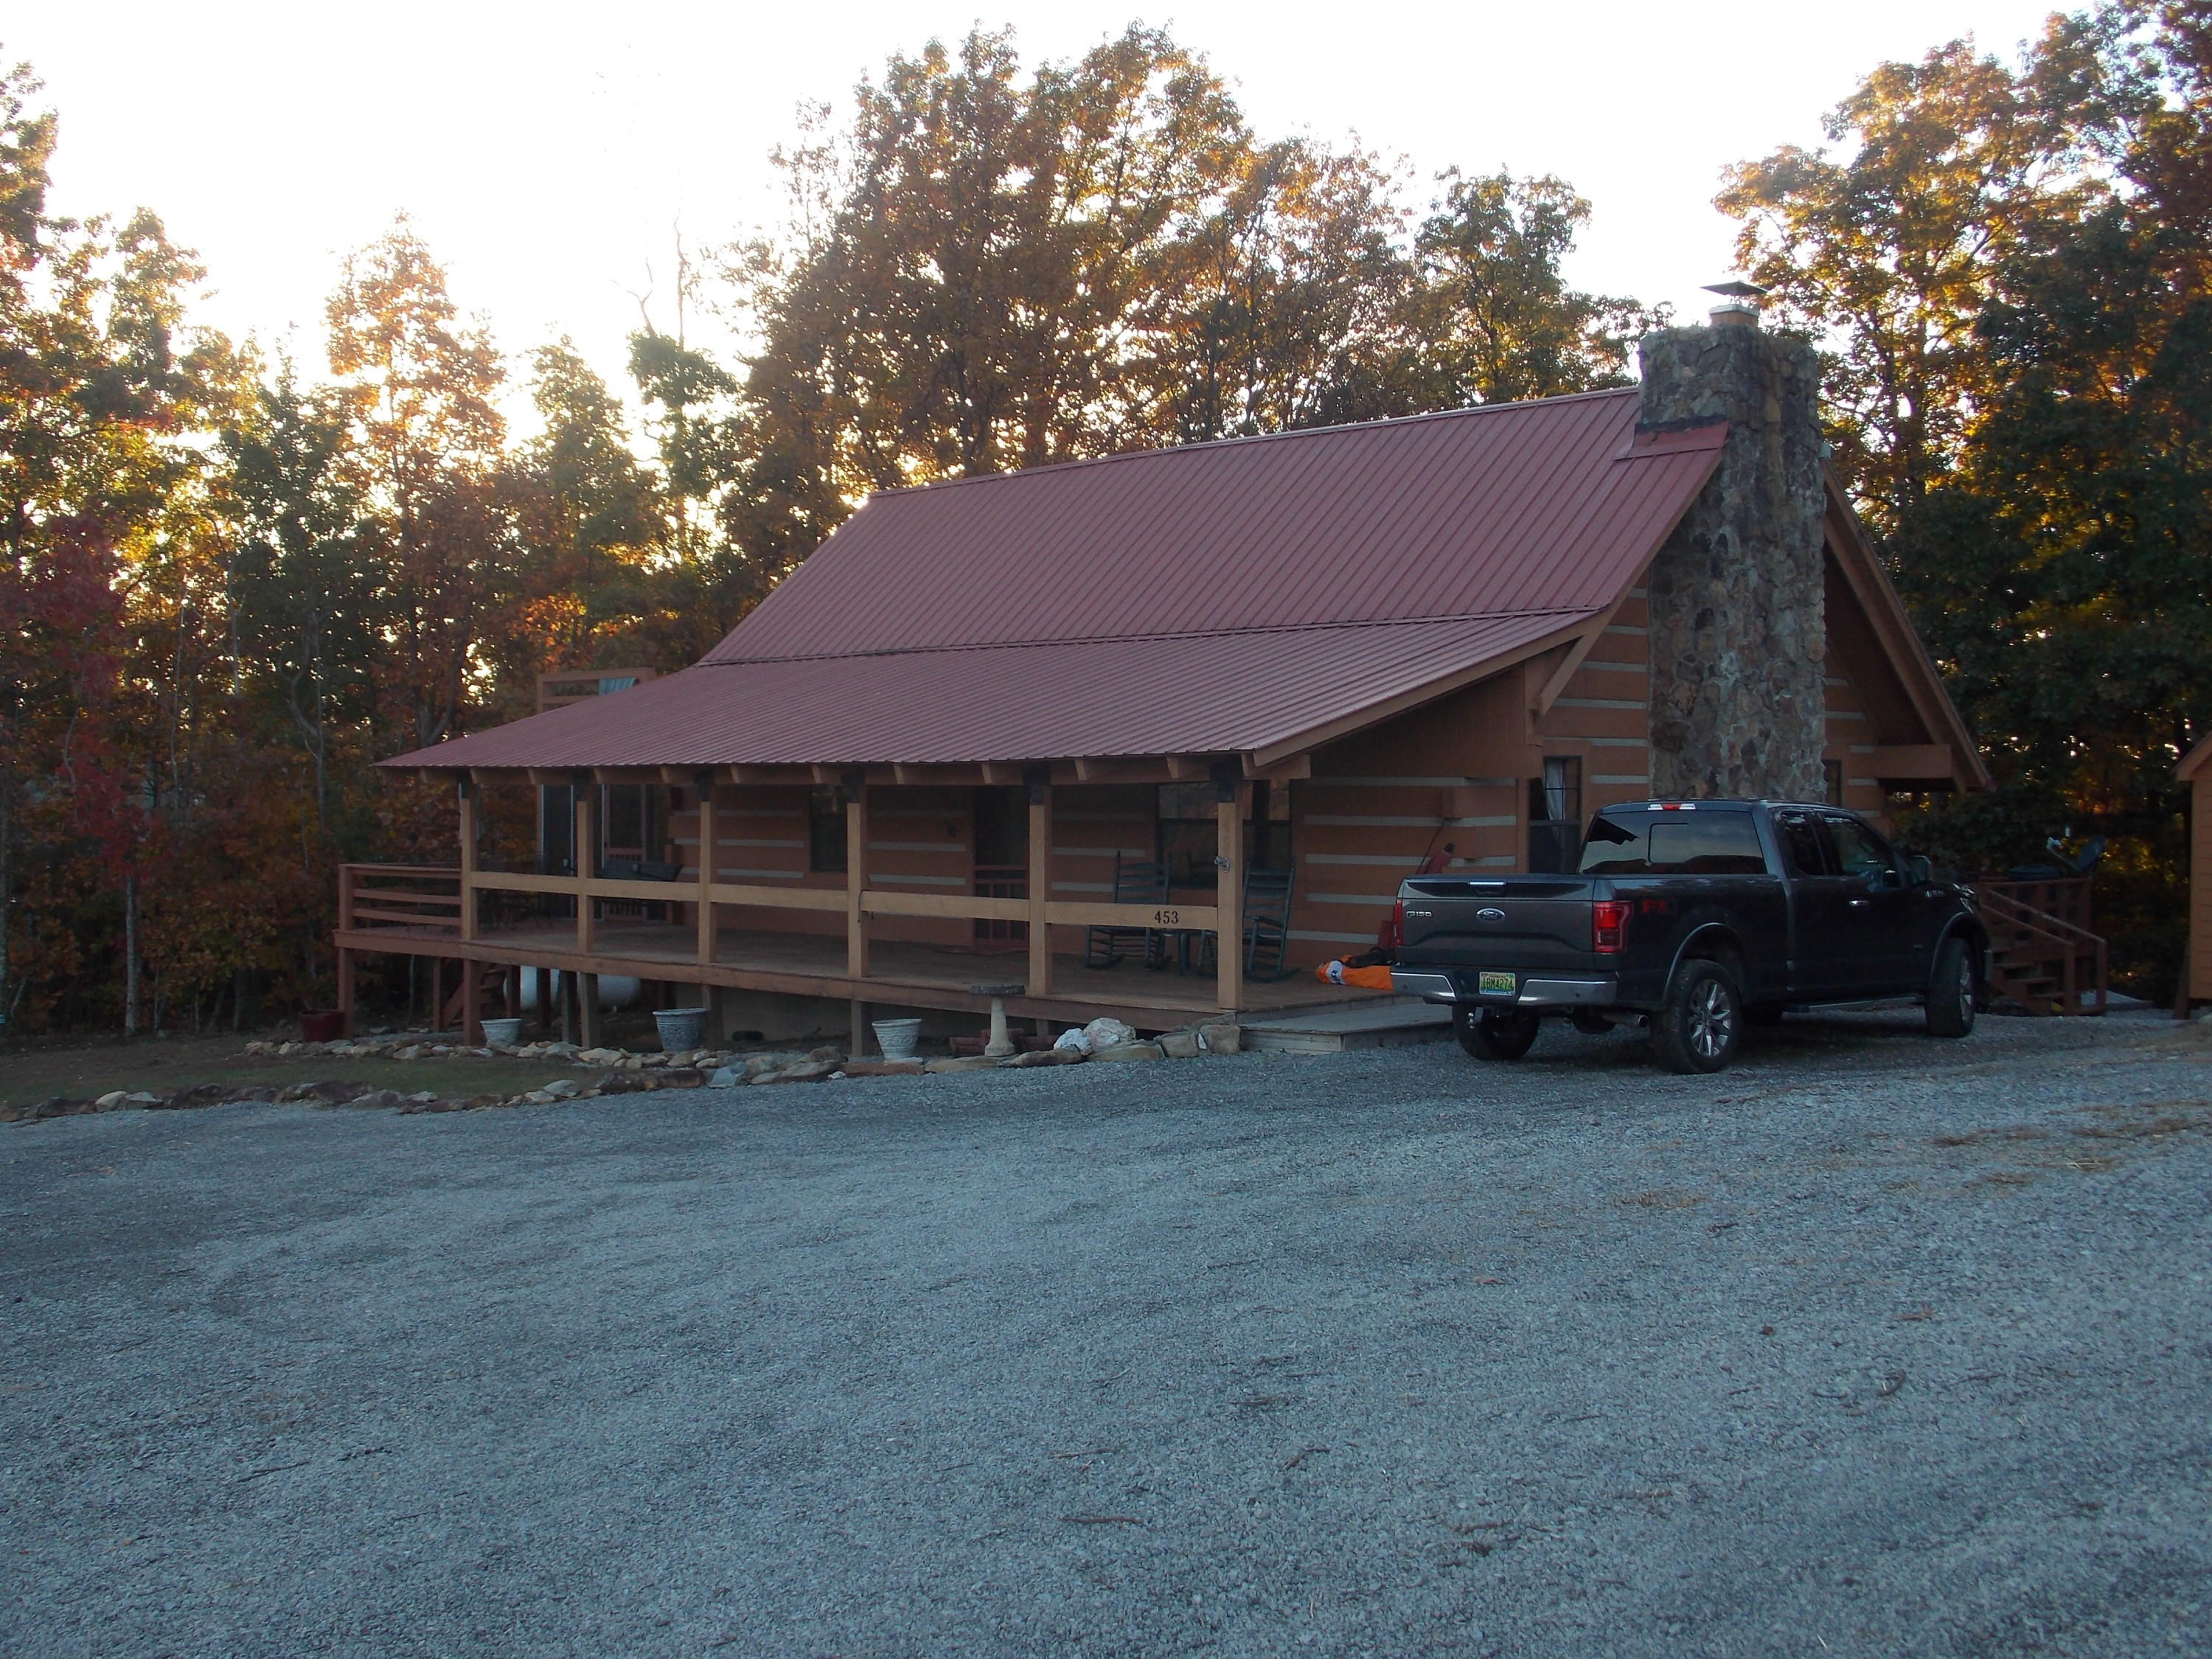 453 Smithfield Rd, Tellico Plains, Tennessee 37385, 2 Bedrooms Bedrooms, ,2 BathroomsBathrooms,Single Family,For Sale,Smithfield,1061201